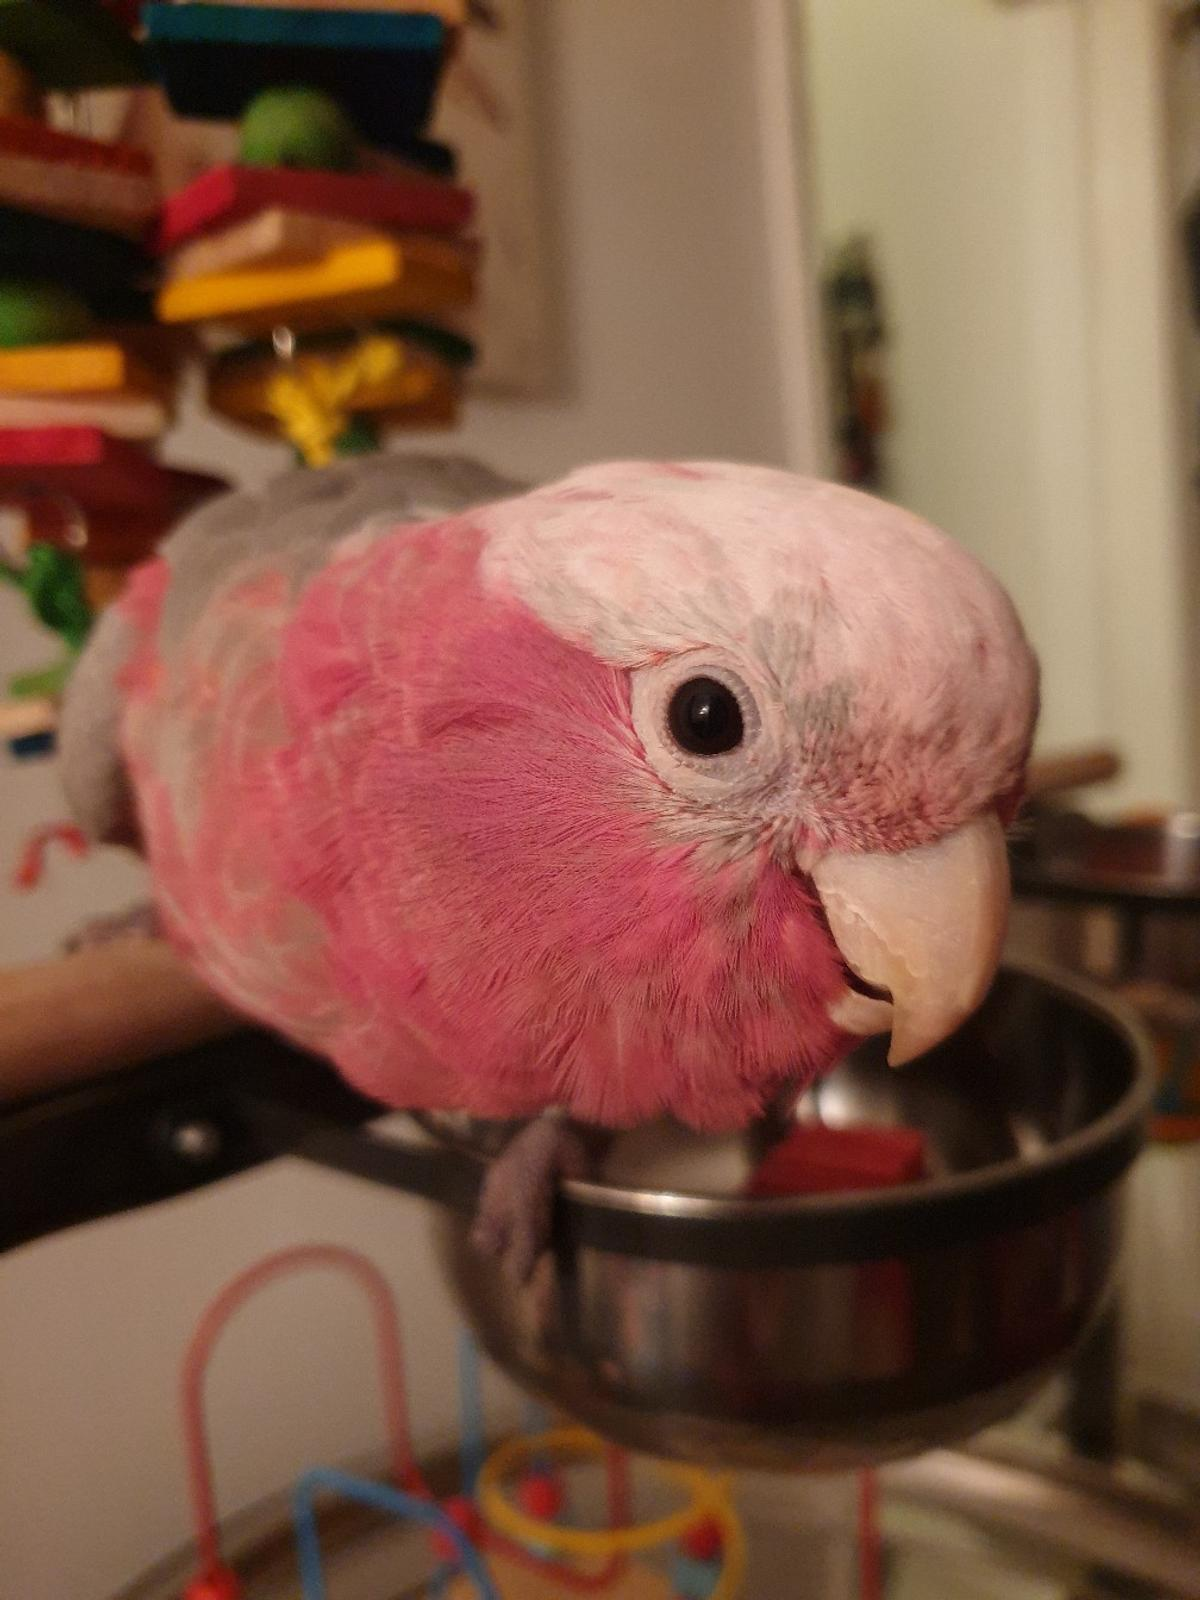 tame young galah cockatoo 12 months old talks loads likes men will go to women when he feels like will swap for a tame parrot that likes women